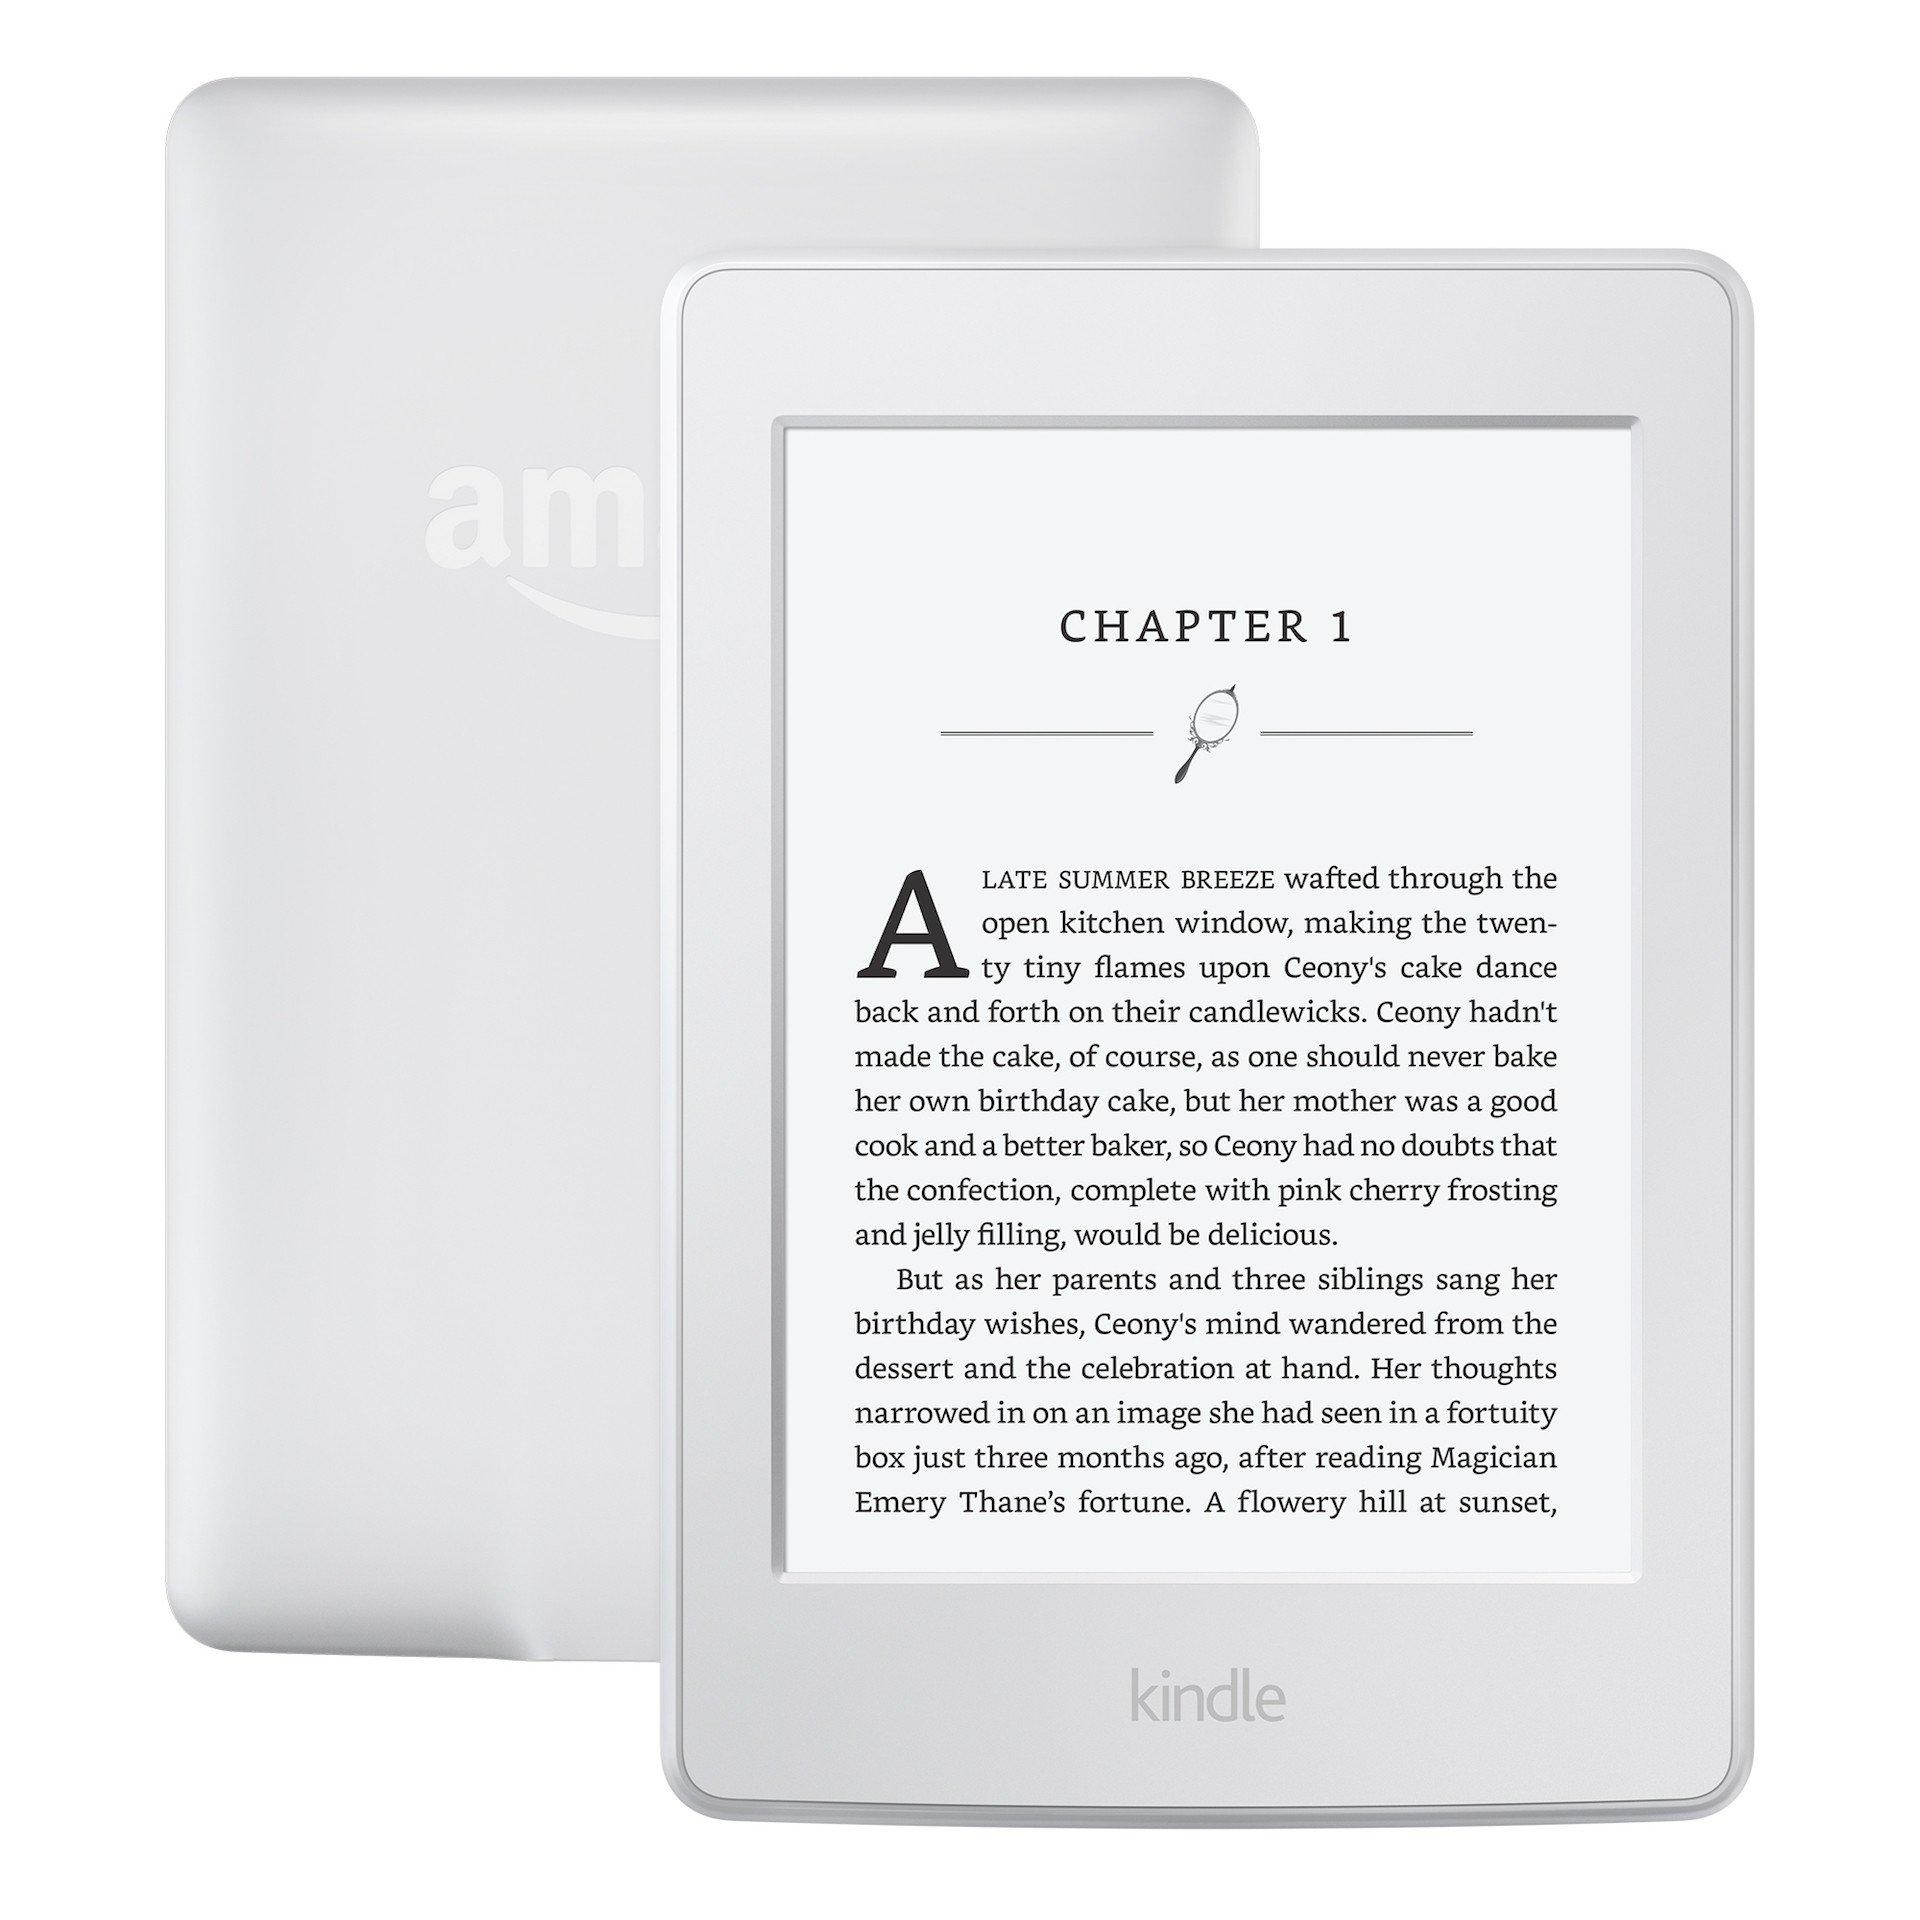 Kindle Paperwhite E Book Reader 7th Gen - White